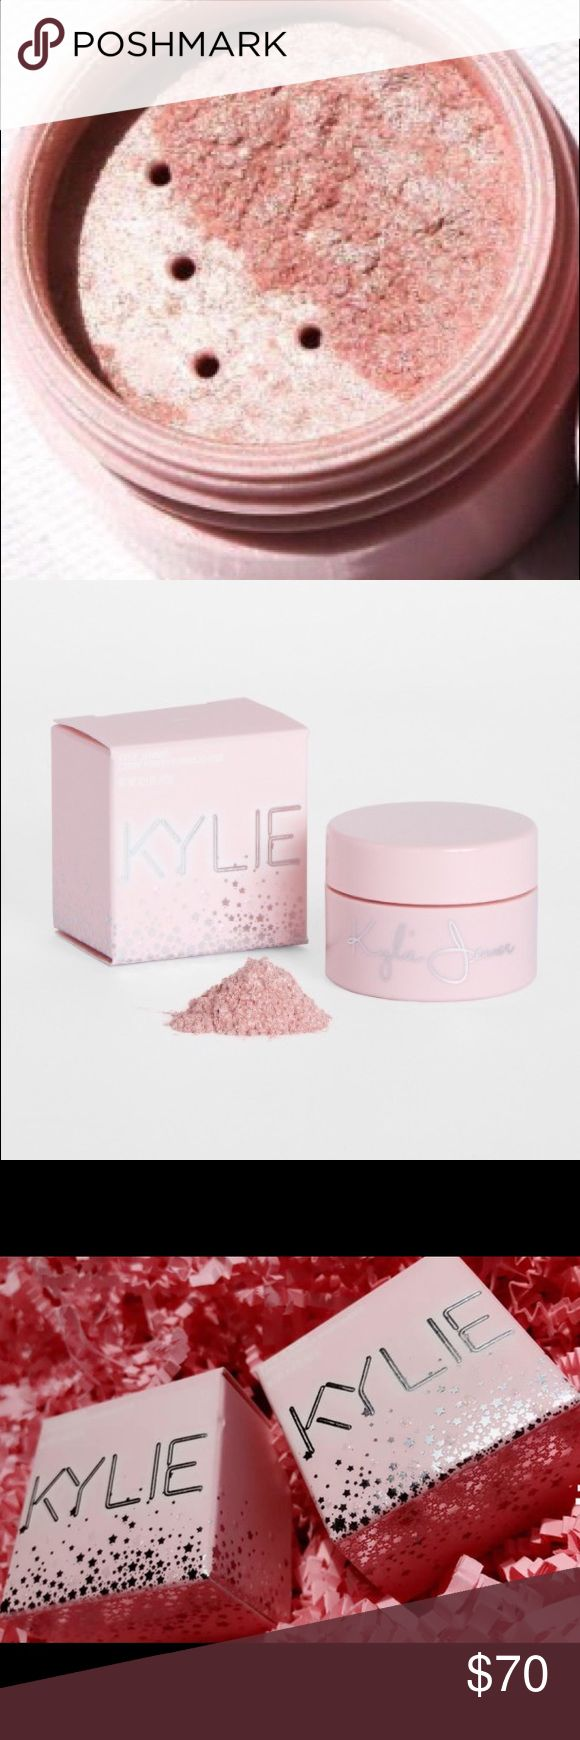 SOLD OUT KYLIE BIRTHDAY QUEEN ULTRA GLOW highlight SOLD OUT ON KYLIES WEBSITE! No trades! BNIB Guaranteed Authentic Kylie Cosmetics 20th birthday collection shimmery icy pink QUEEN ULTRA GLOW highlighter!  Loose illuminating powder to create a custom glow. *Swatch if queen ultra glow is on left in last pic taken from internet!  Product never touched!* Kylie Cosmetics Makeup Luminizer